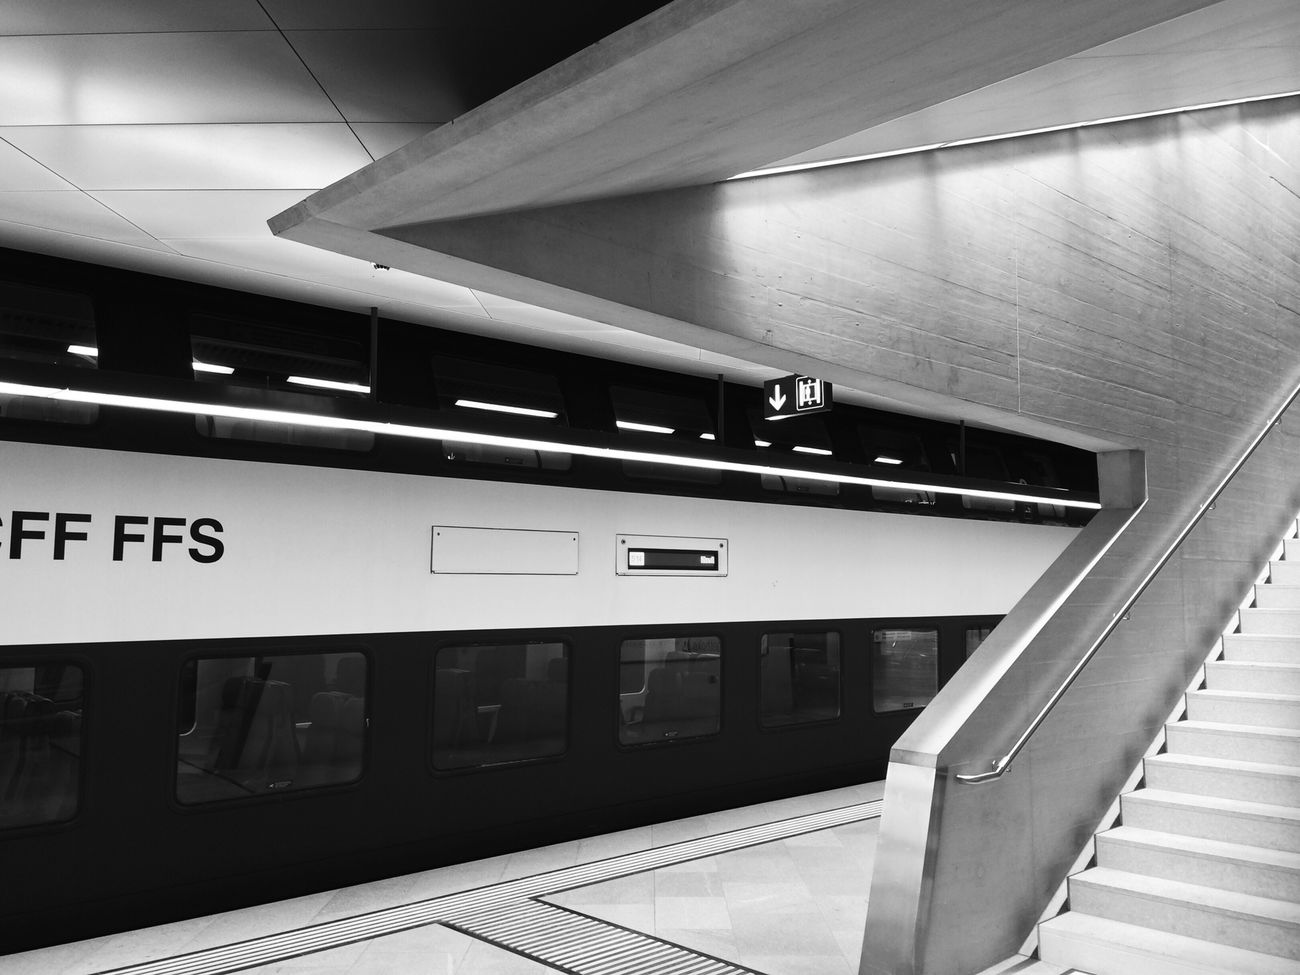 Different lines Architecture Black And White Trainstation EyeEmSwiss